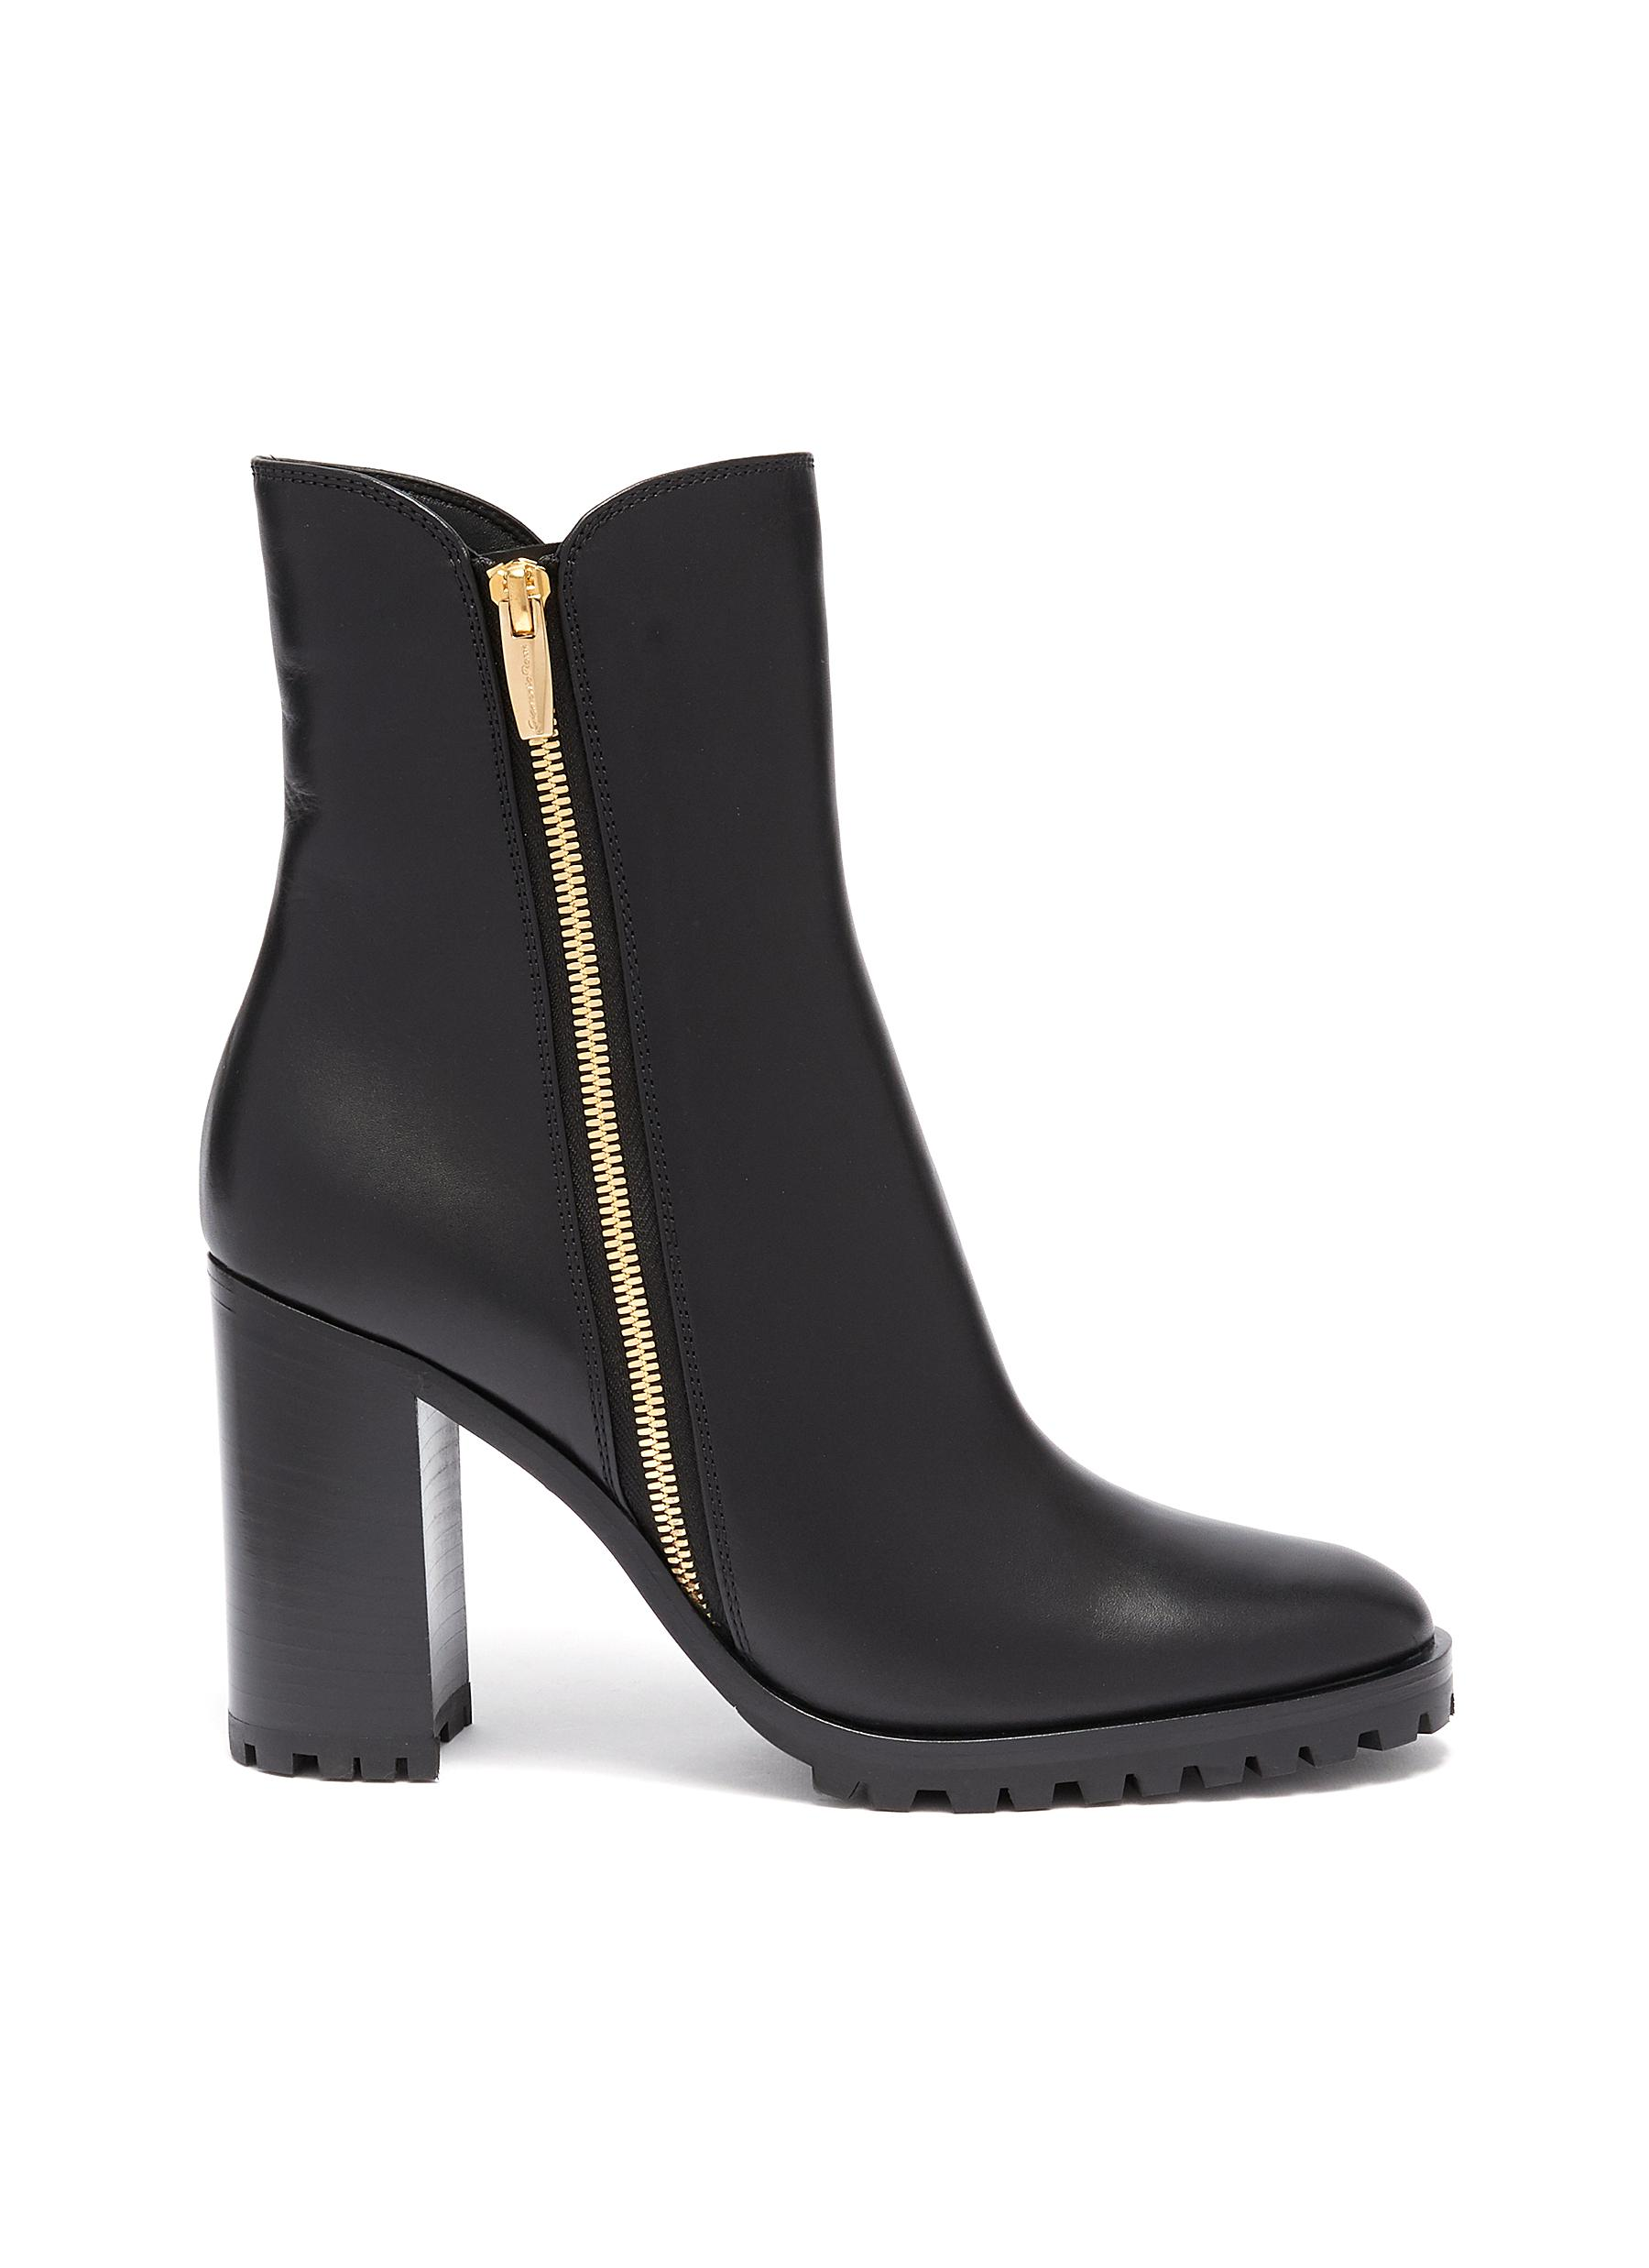 Gianvito Rossi Boots Leather ankle boots